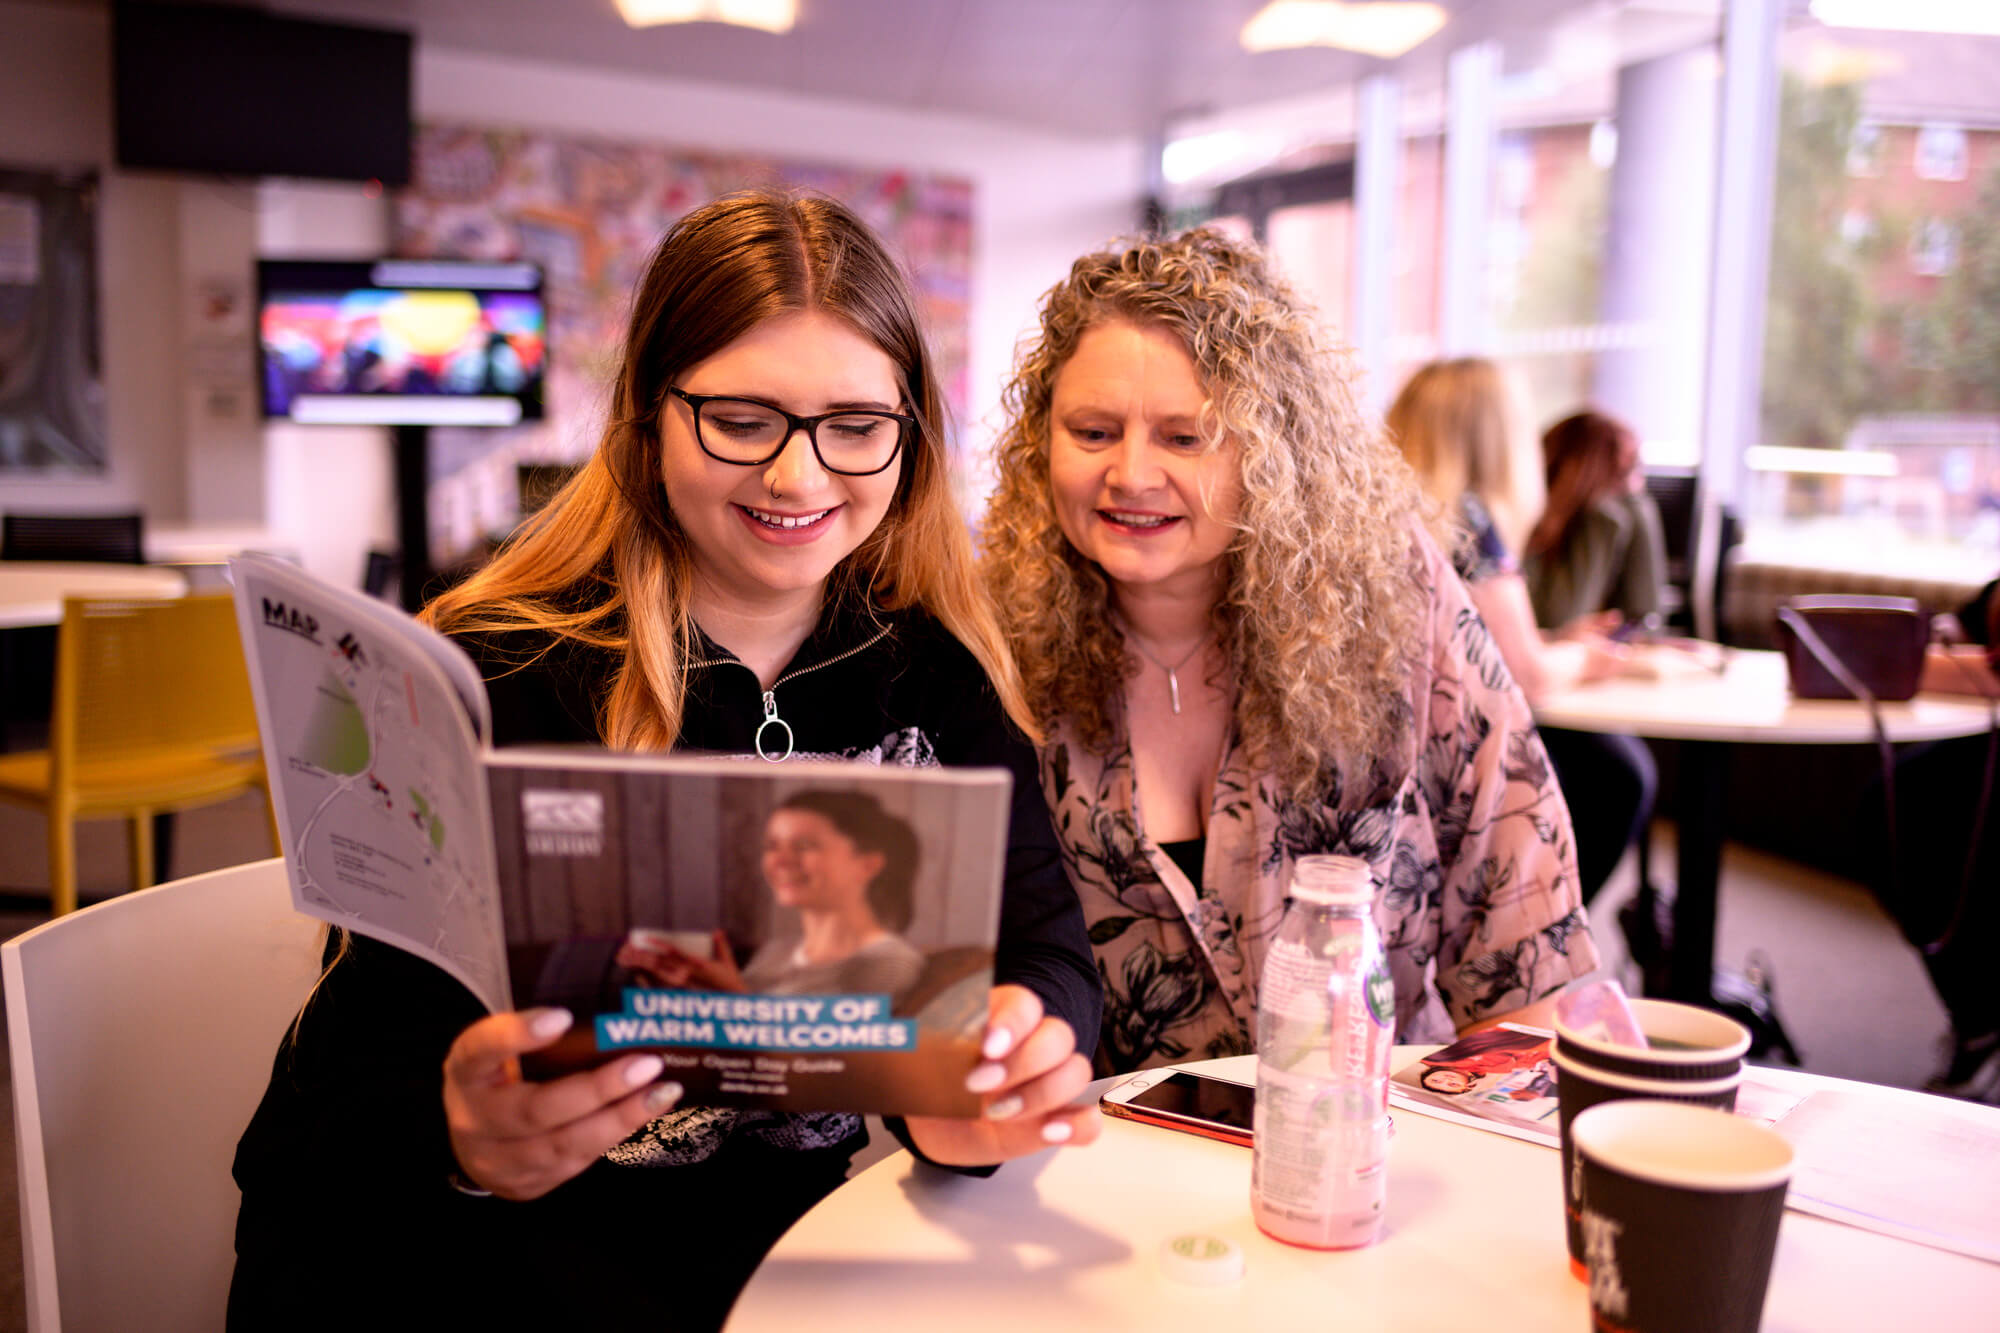 Two ladies reading an open day guide, smiling